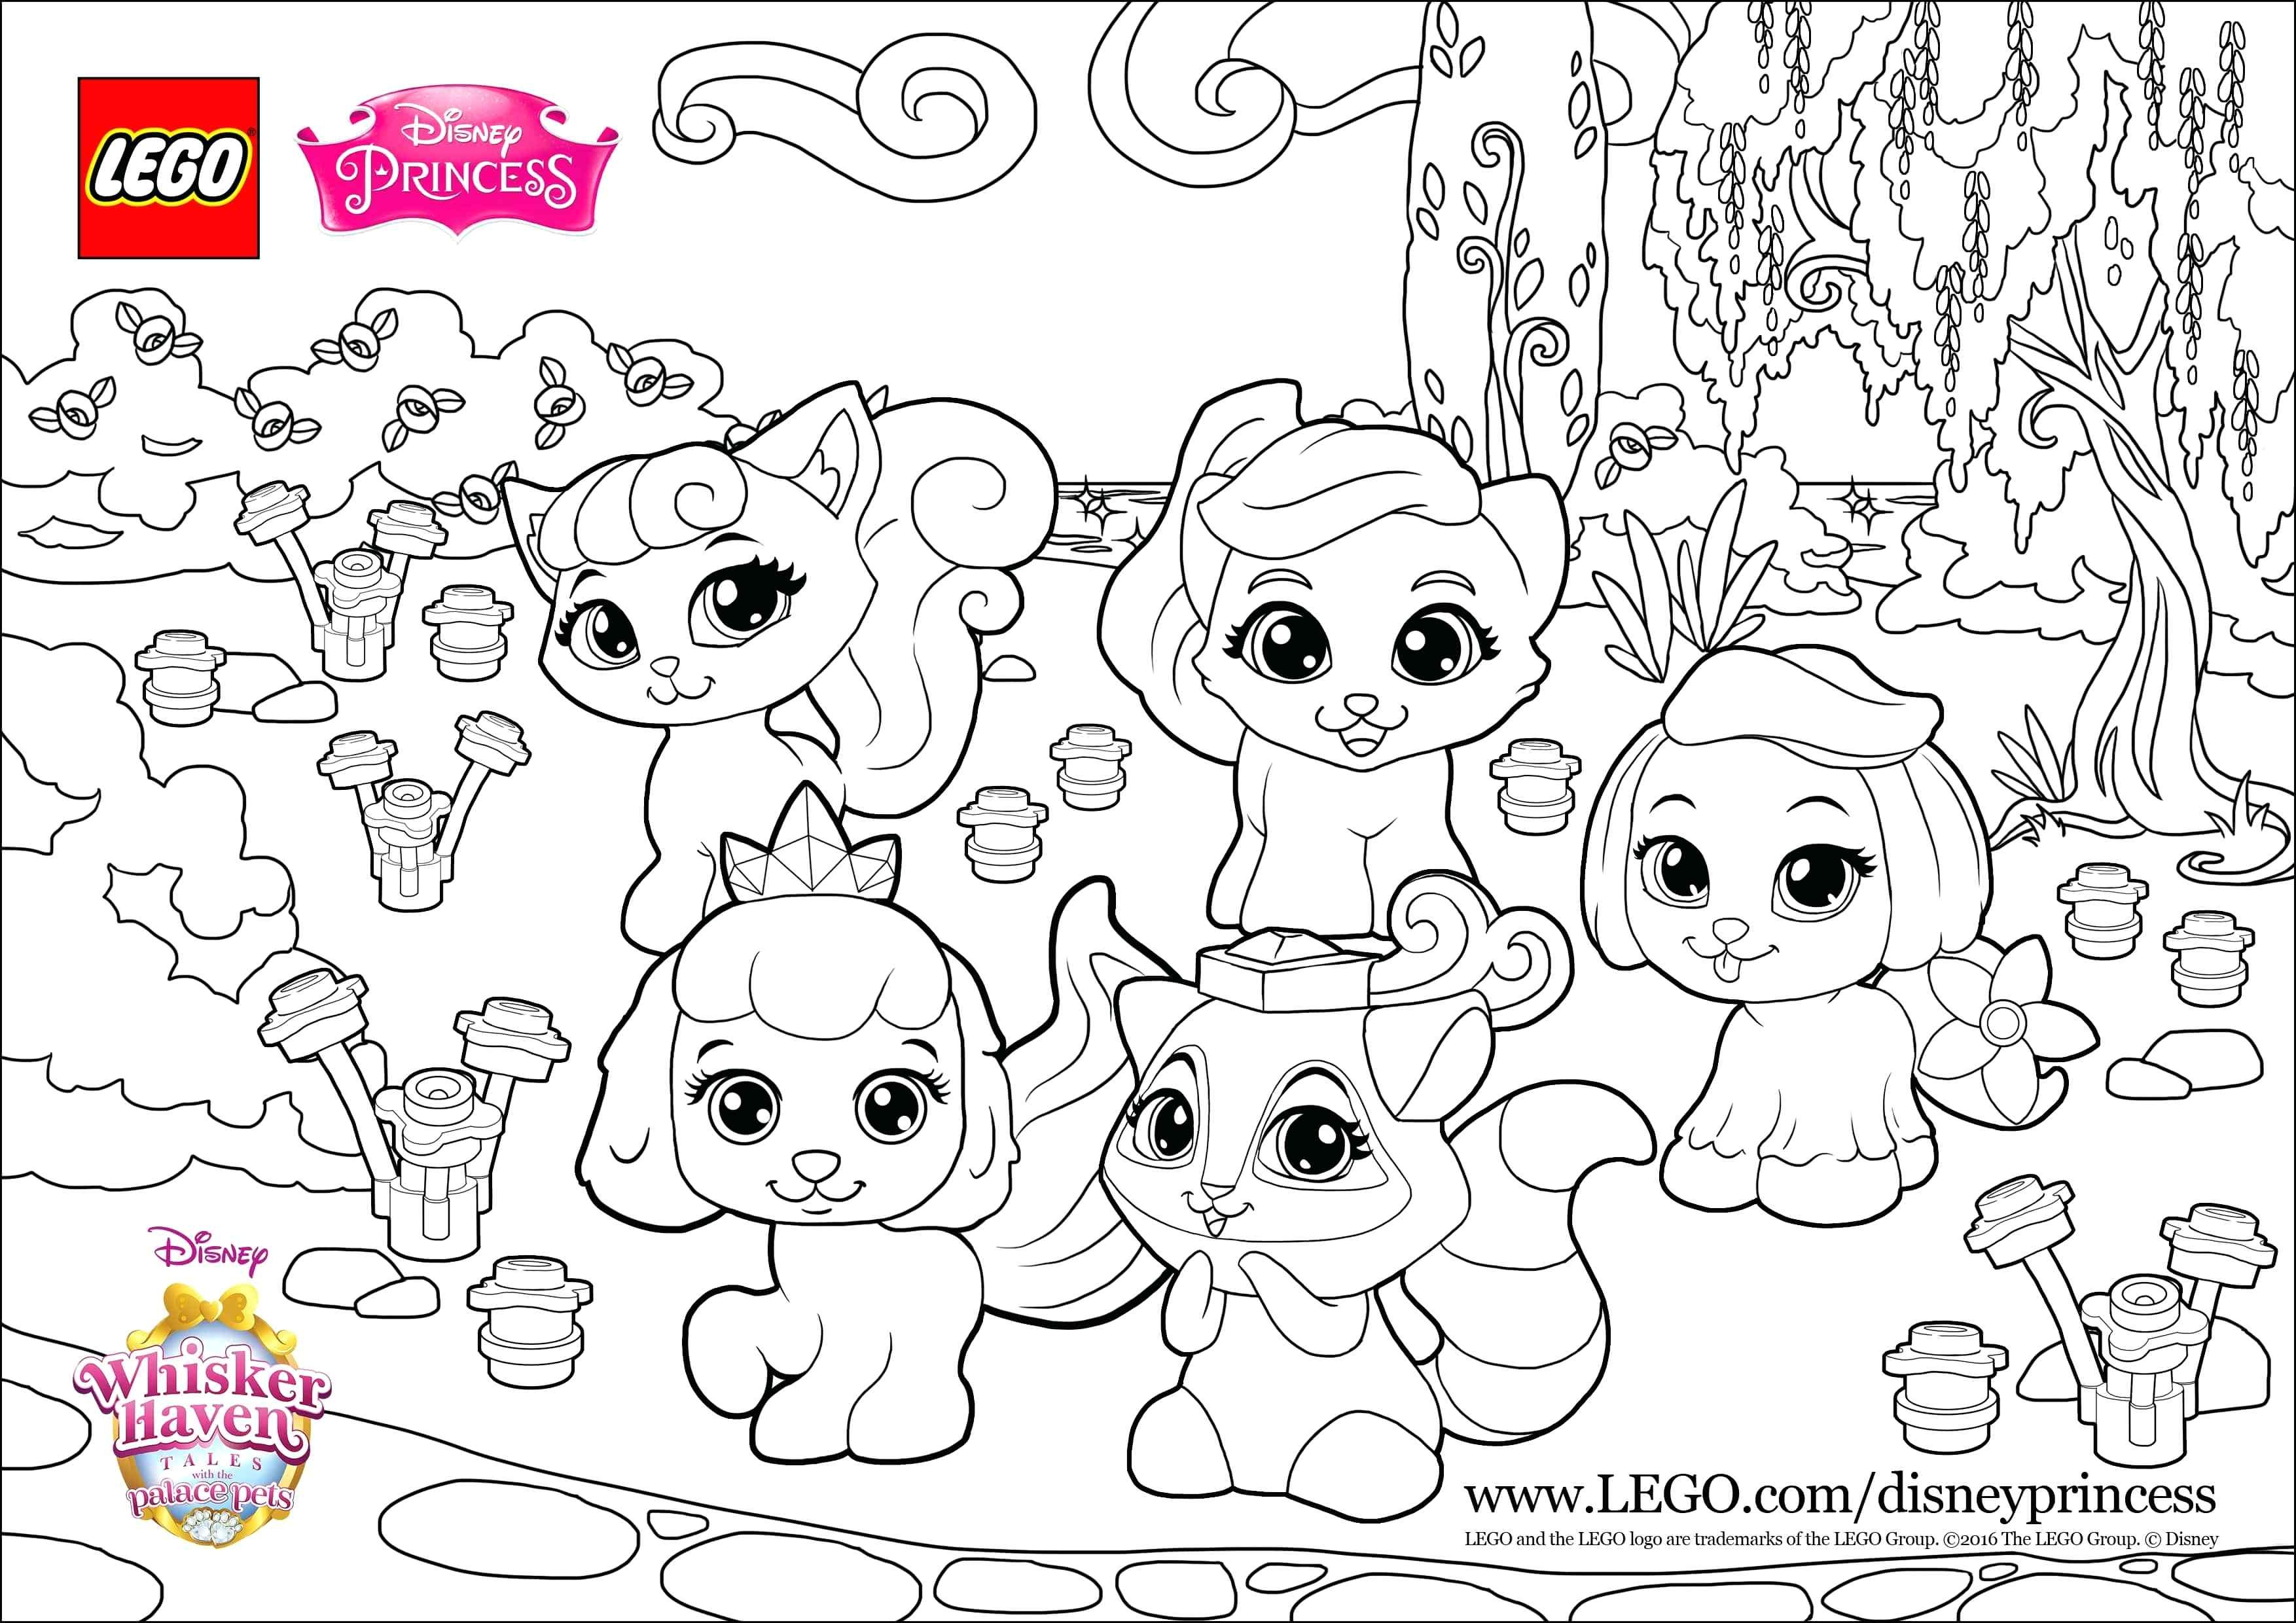 Lego Friends Printable Coloring Pages Coloring Book Lego Friendsing Pages To Print Free Book Movie